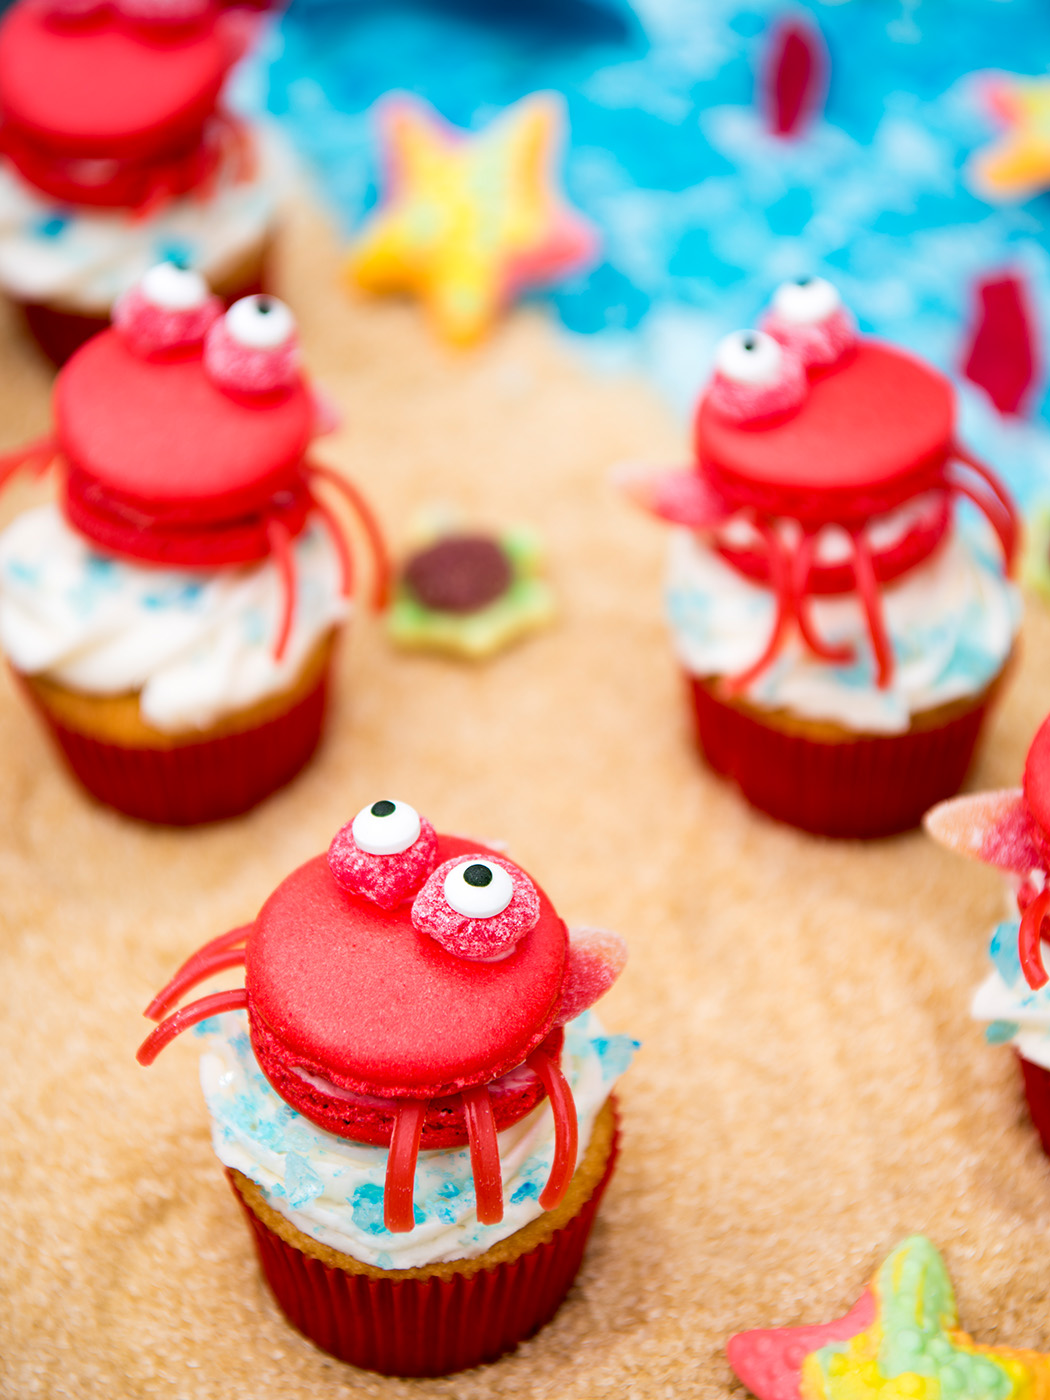 Deborah_Farnault_Food_Network_How-To-Win-Summer-Crab-Cupcakes-3x4-0589.jpg